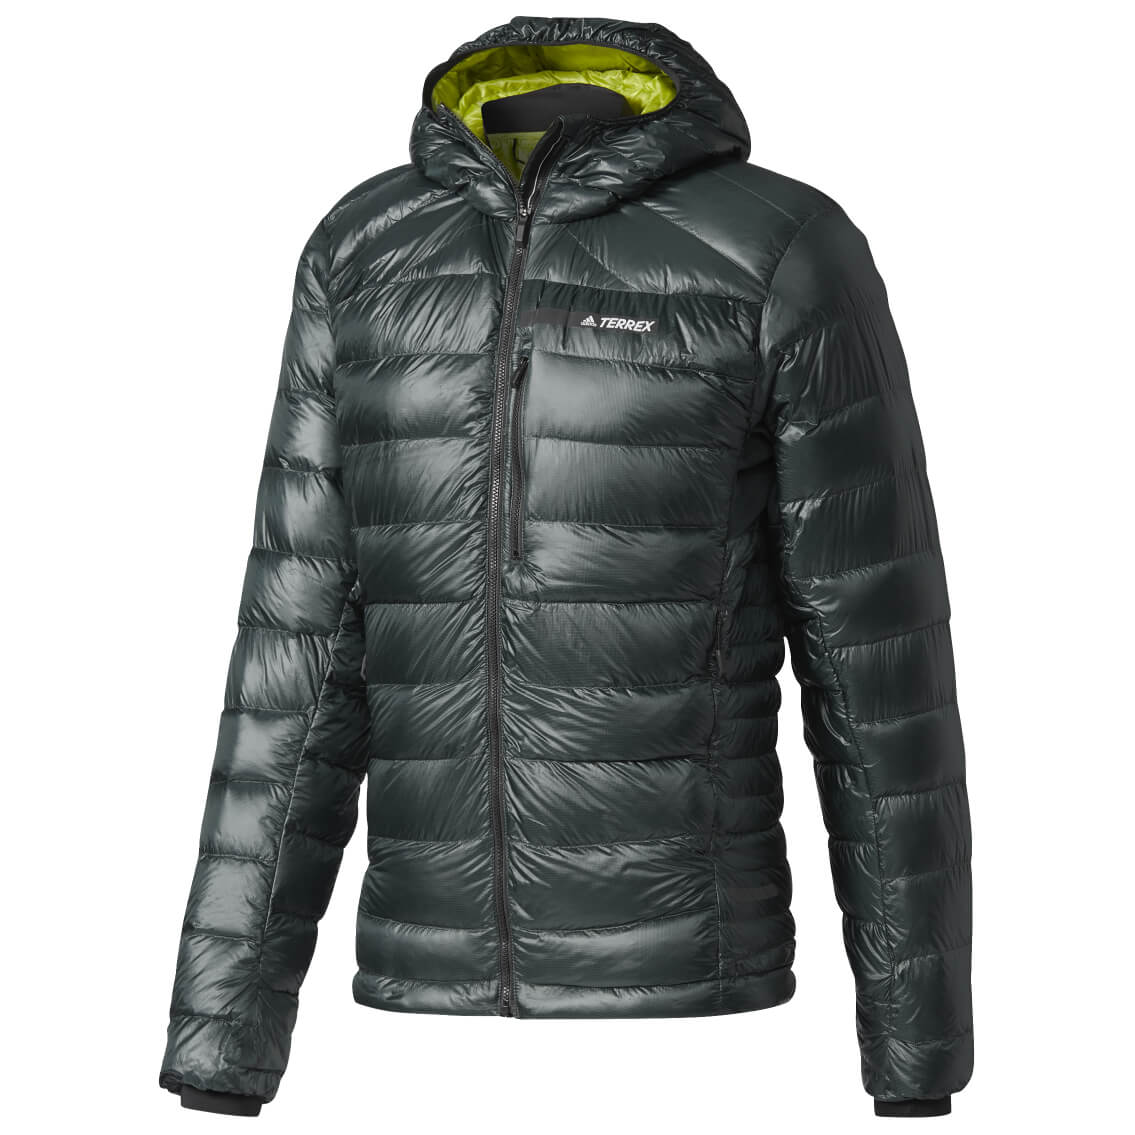 Down Hooded Jacket Terrex Climaheat Agravic Adidas SGqUMVpz